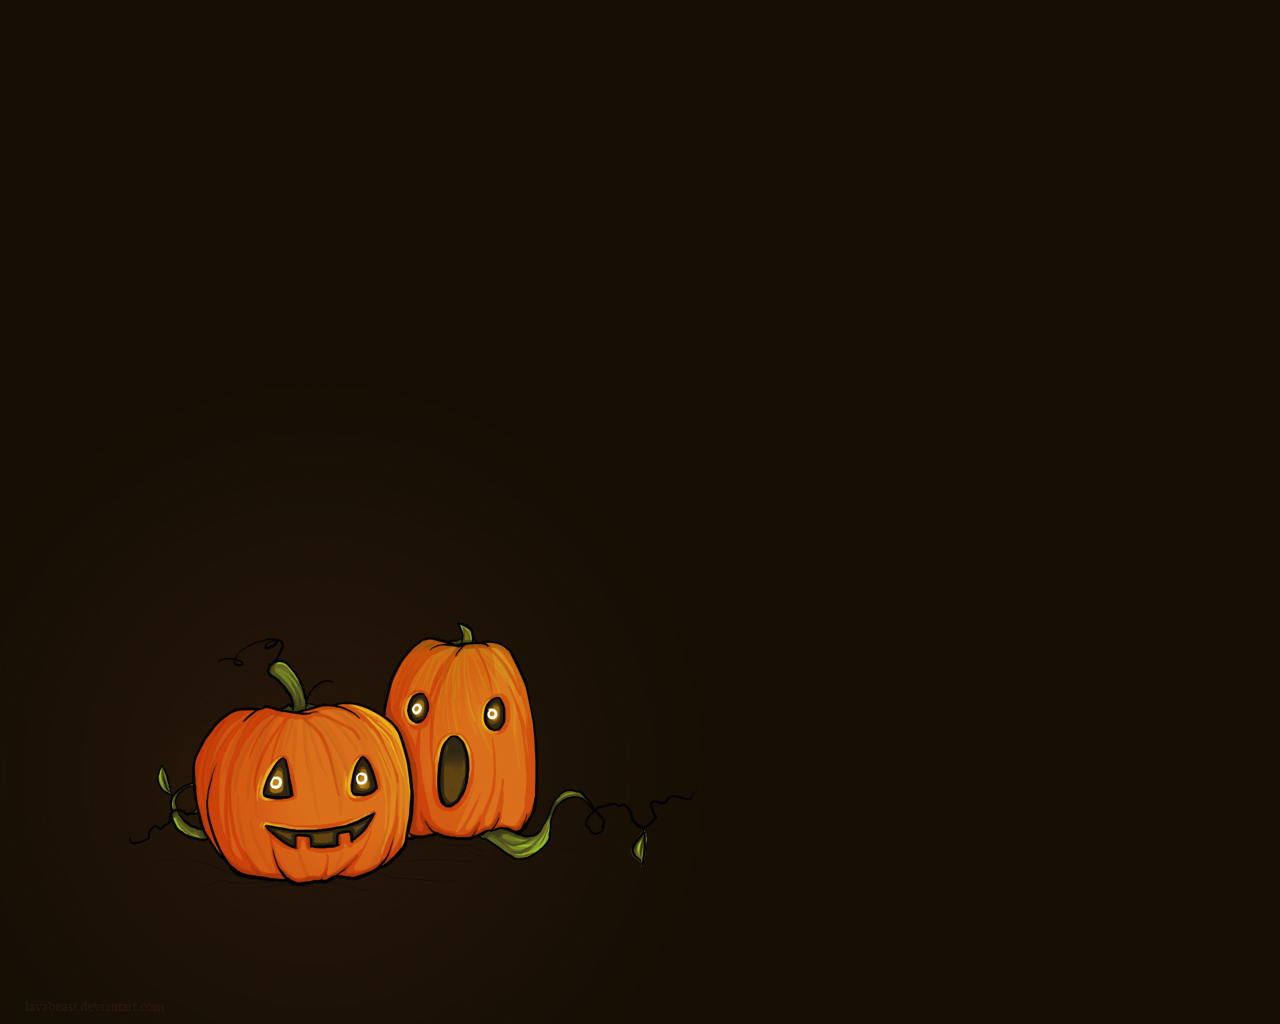 halloween cute wallpaper #24